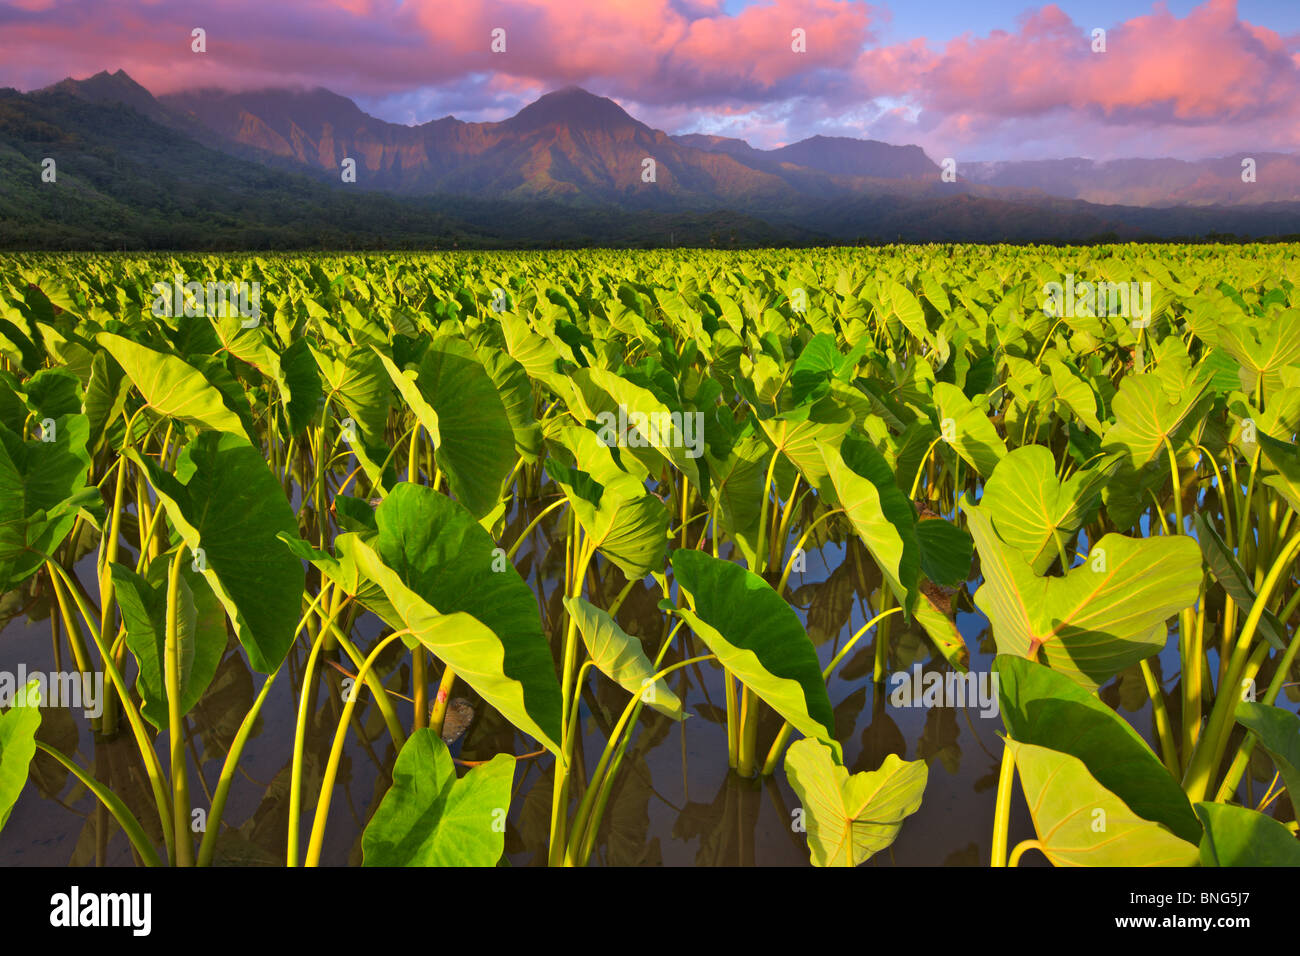 Le taro (Colocasia esculenta) récolte dans un champ, vallée d'Hanalei, Kauai, Hawaii, USA Photo Stock